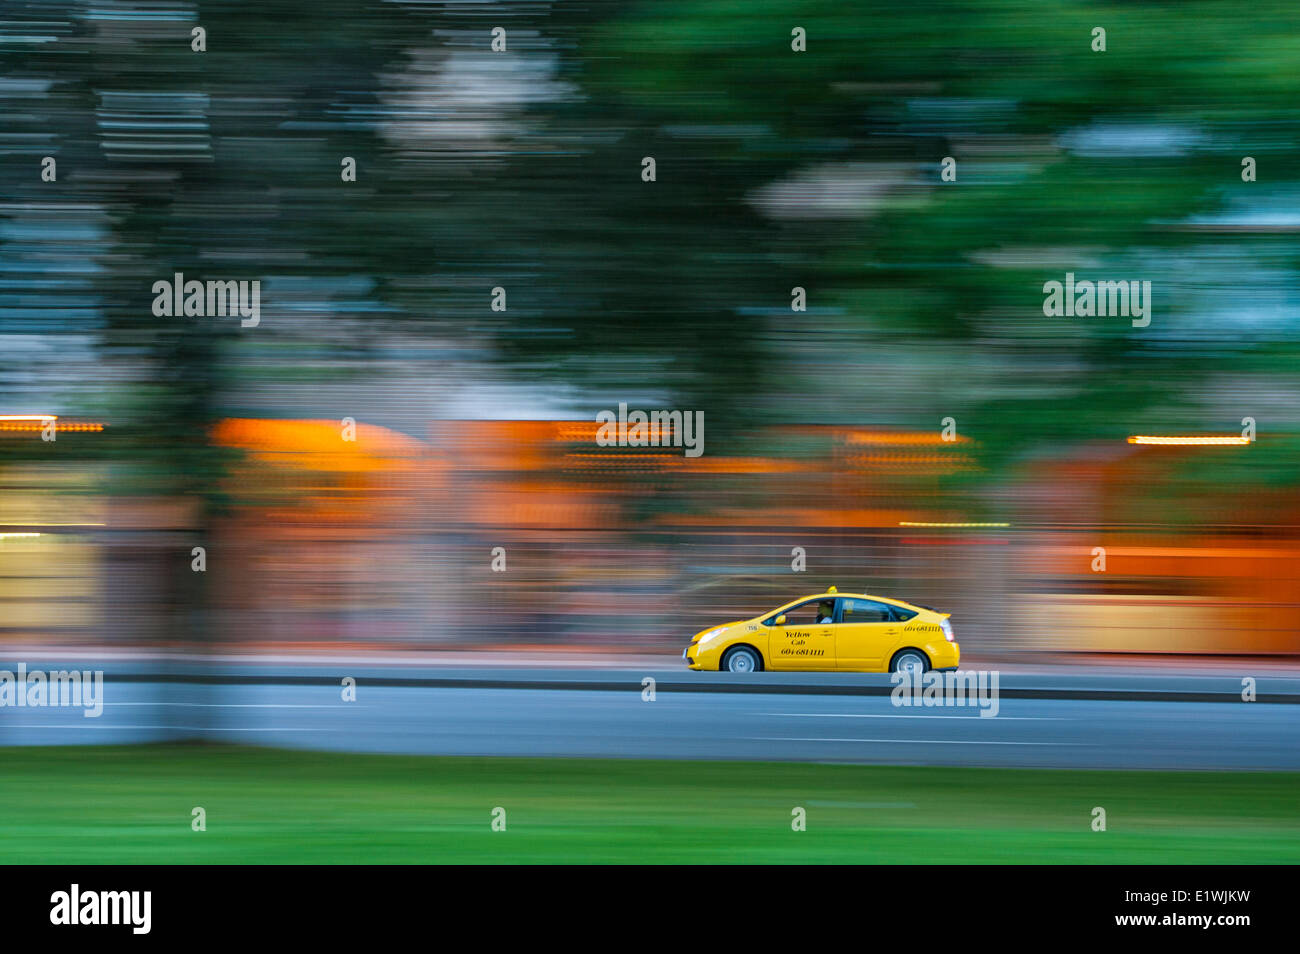 Taxi, Main Street Vancouver. - Stock Image